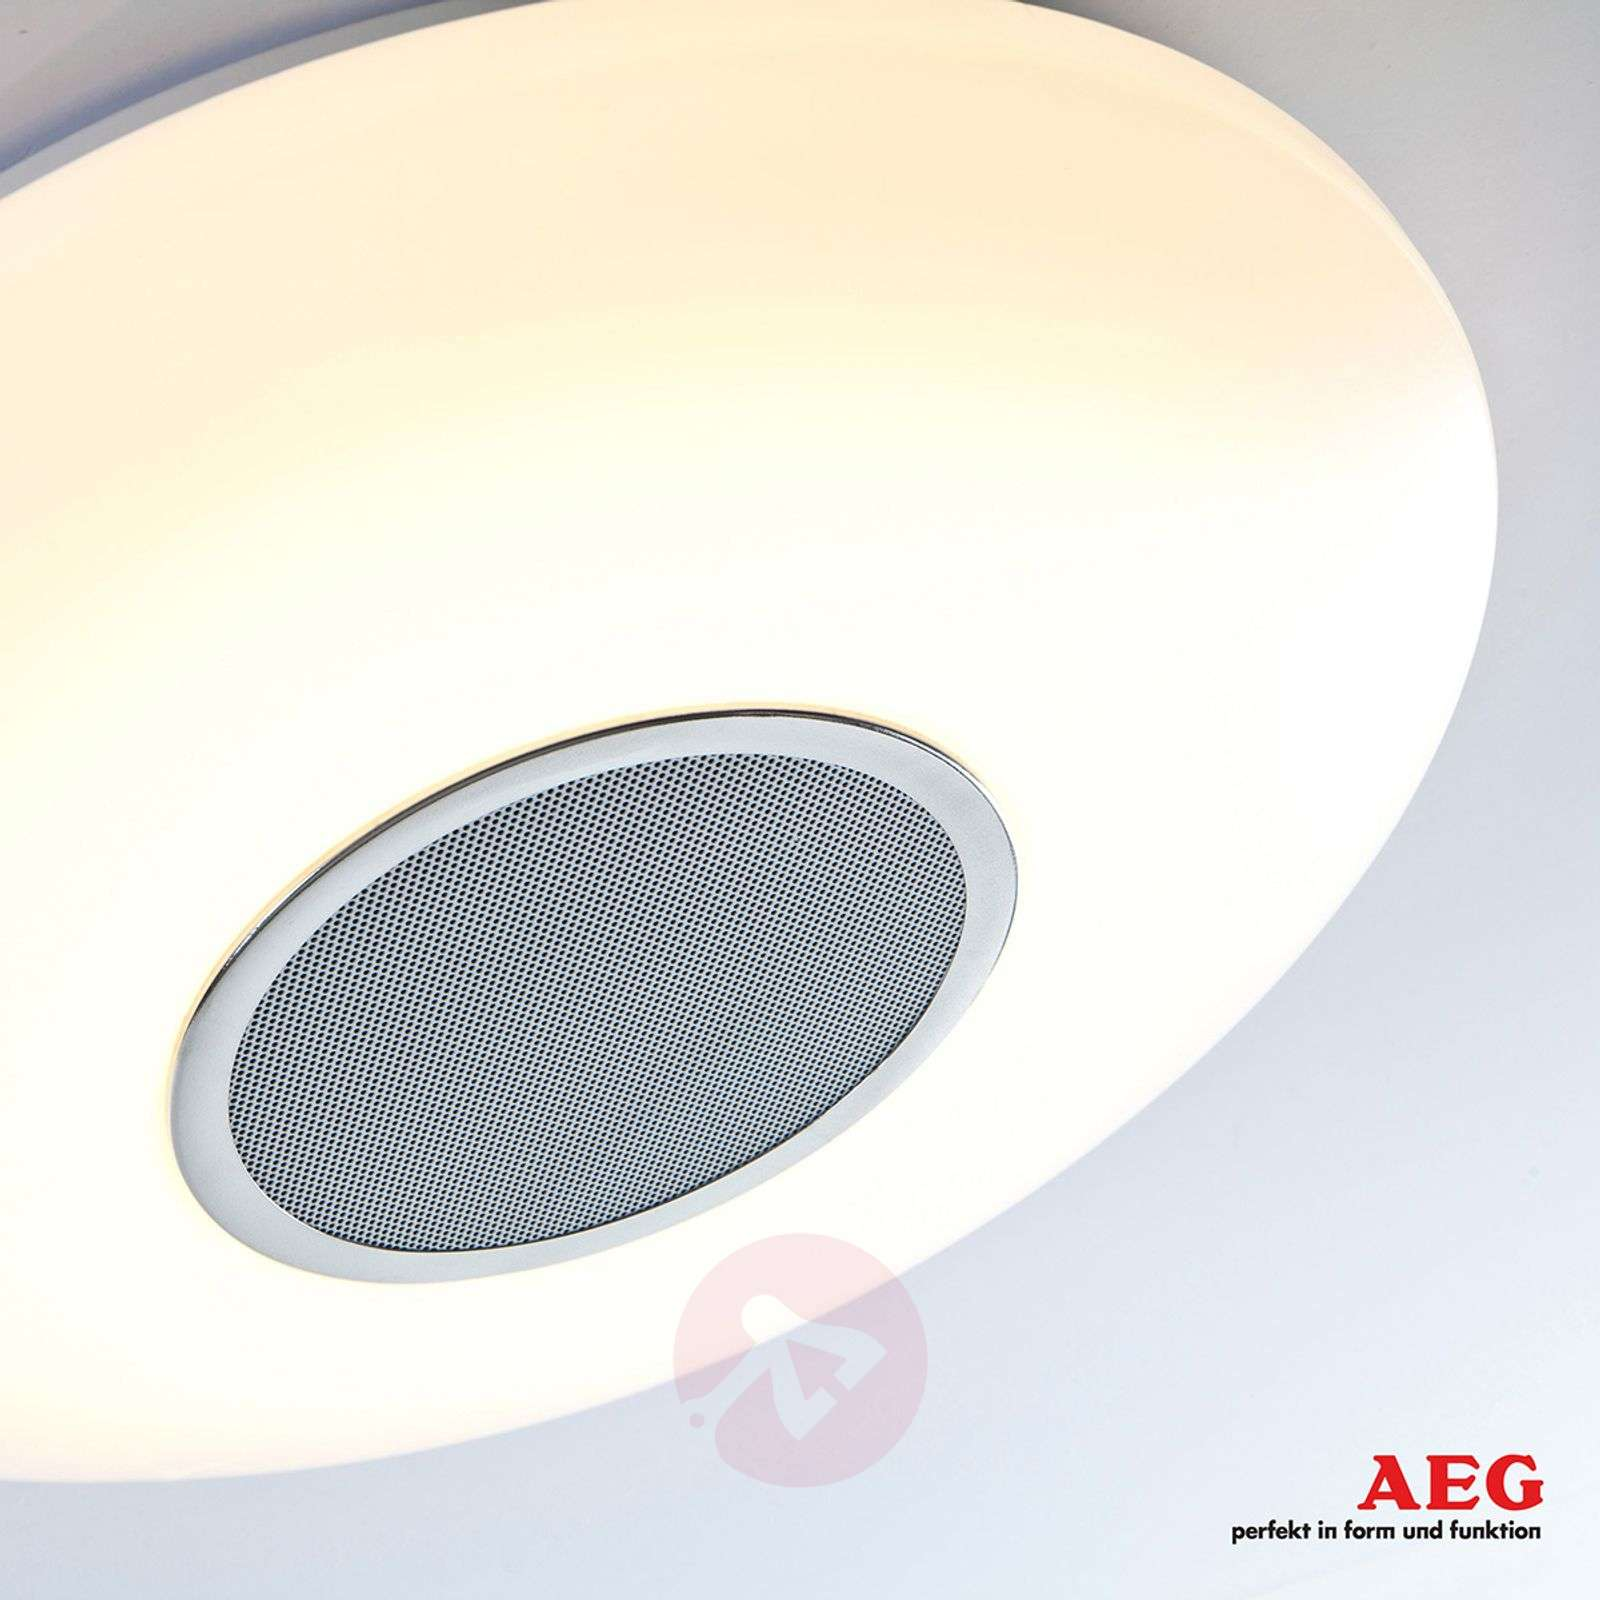 AEG LED Ceiling Light Bailando valo ja ääni-3057013-05